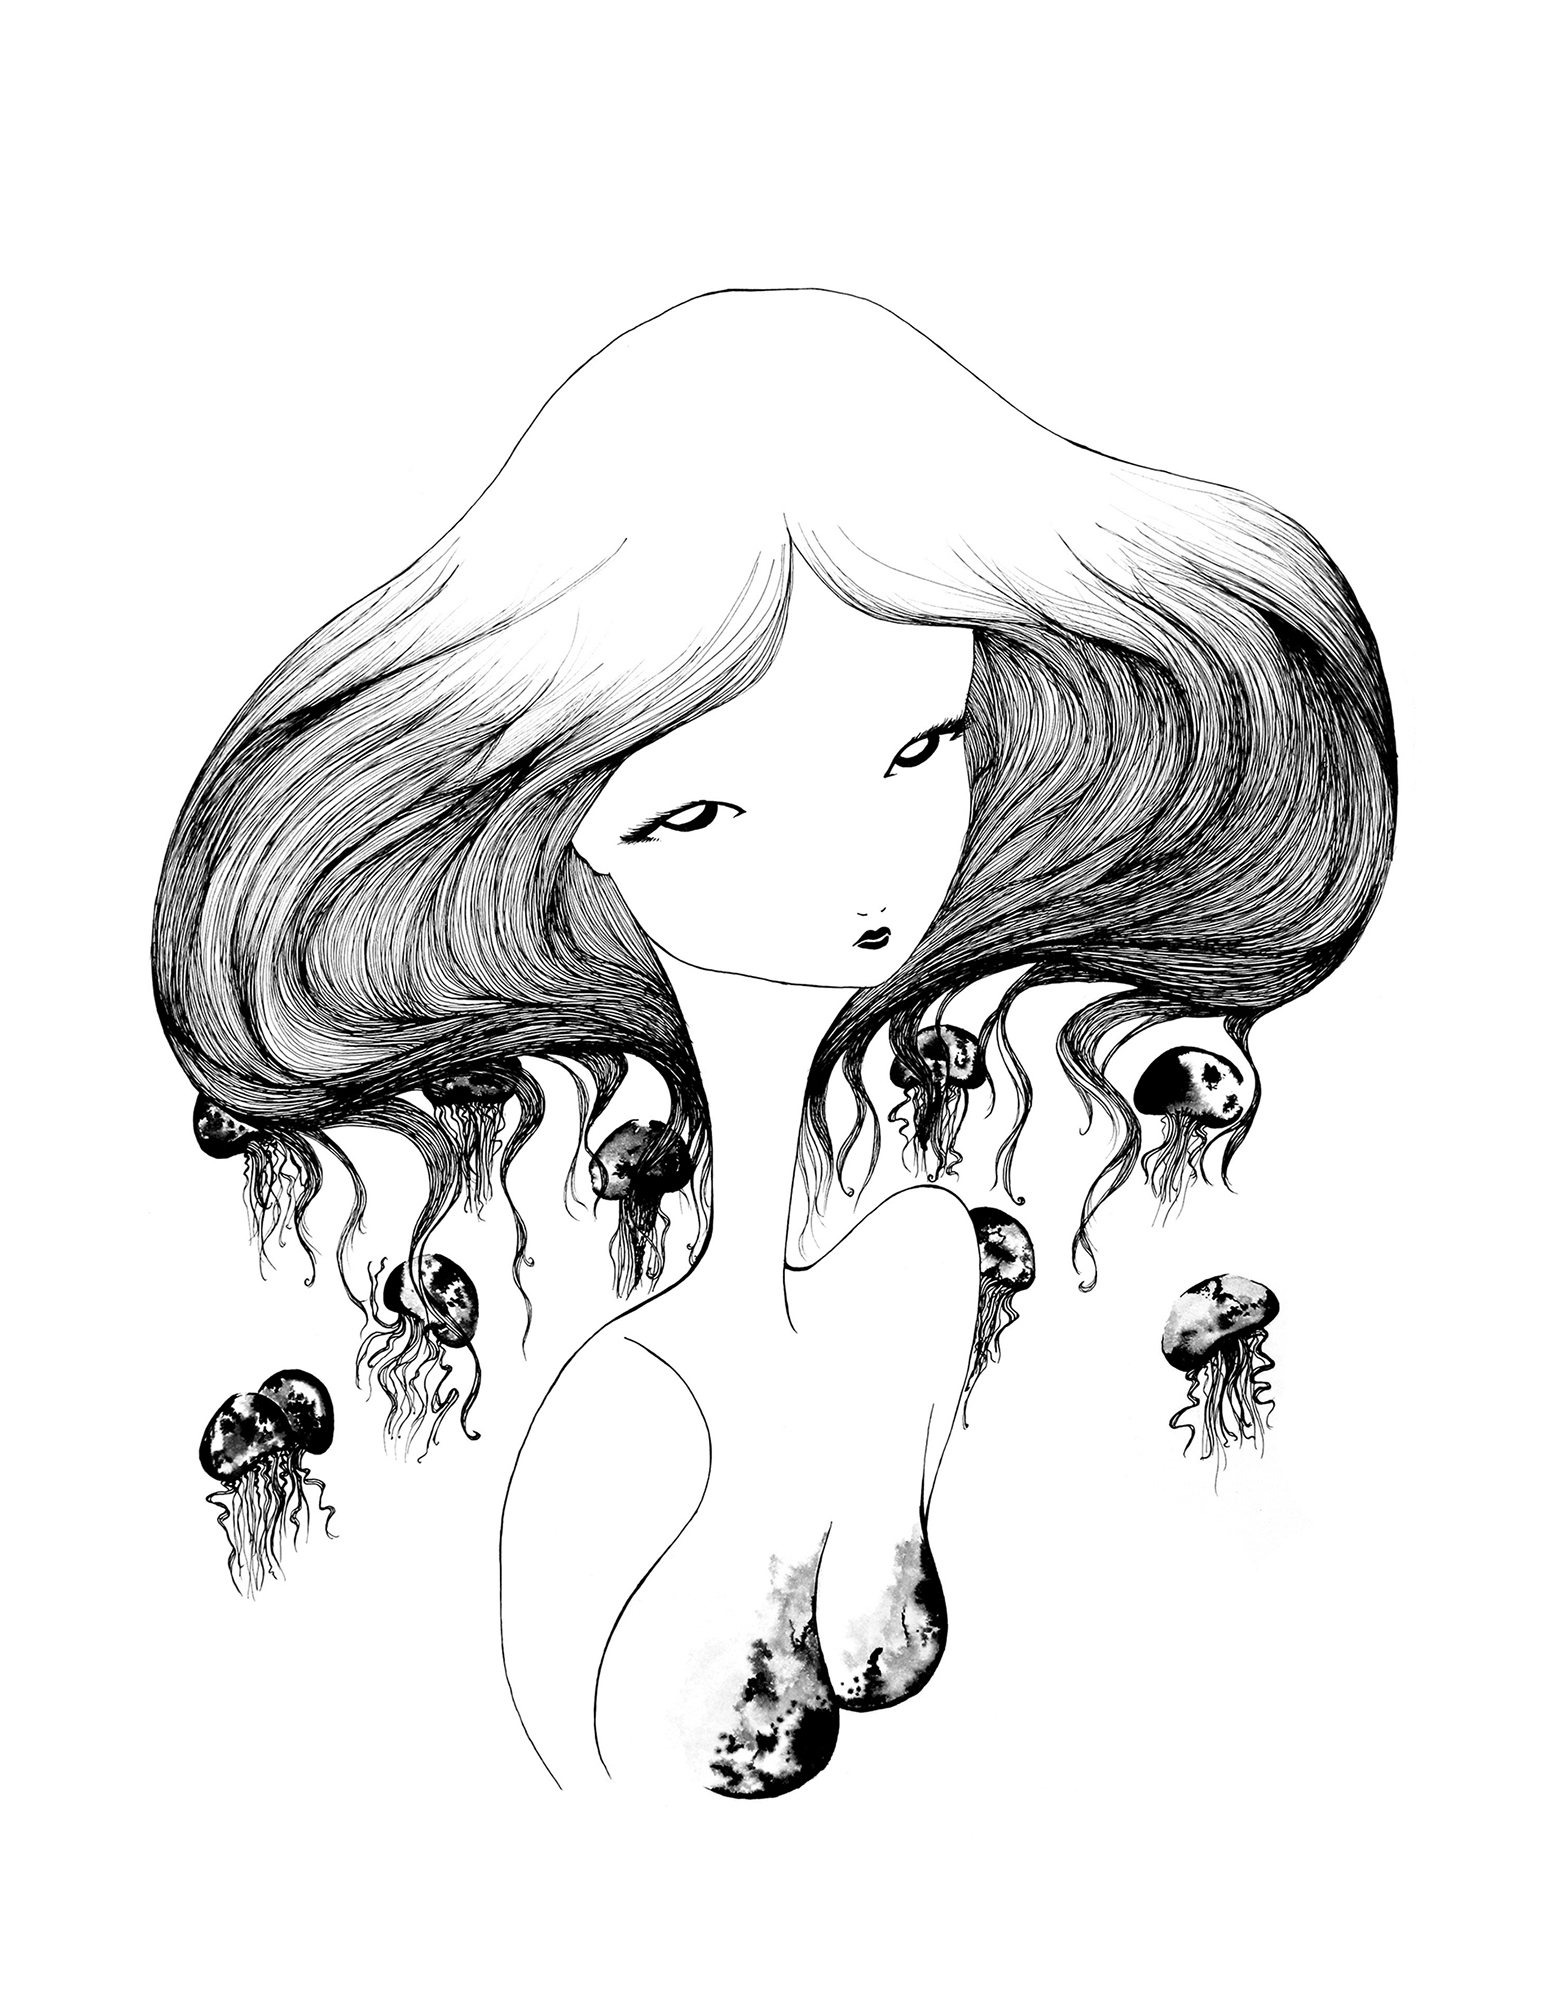 The Femininity of Jellyfish